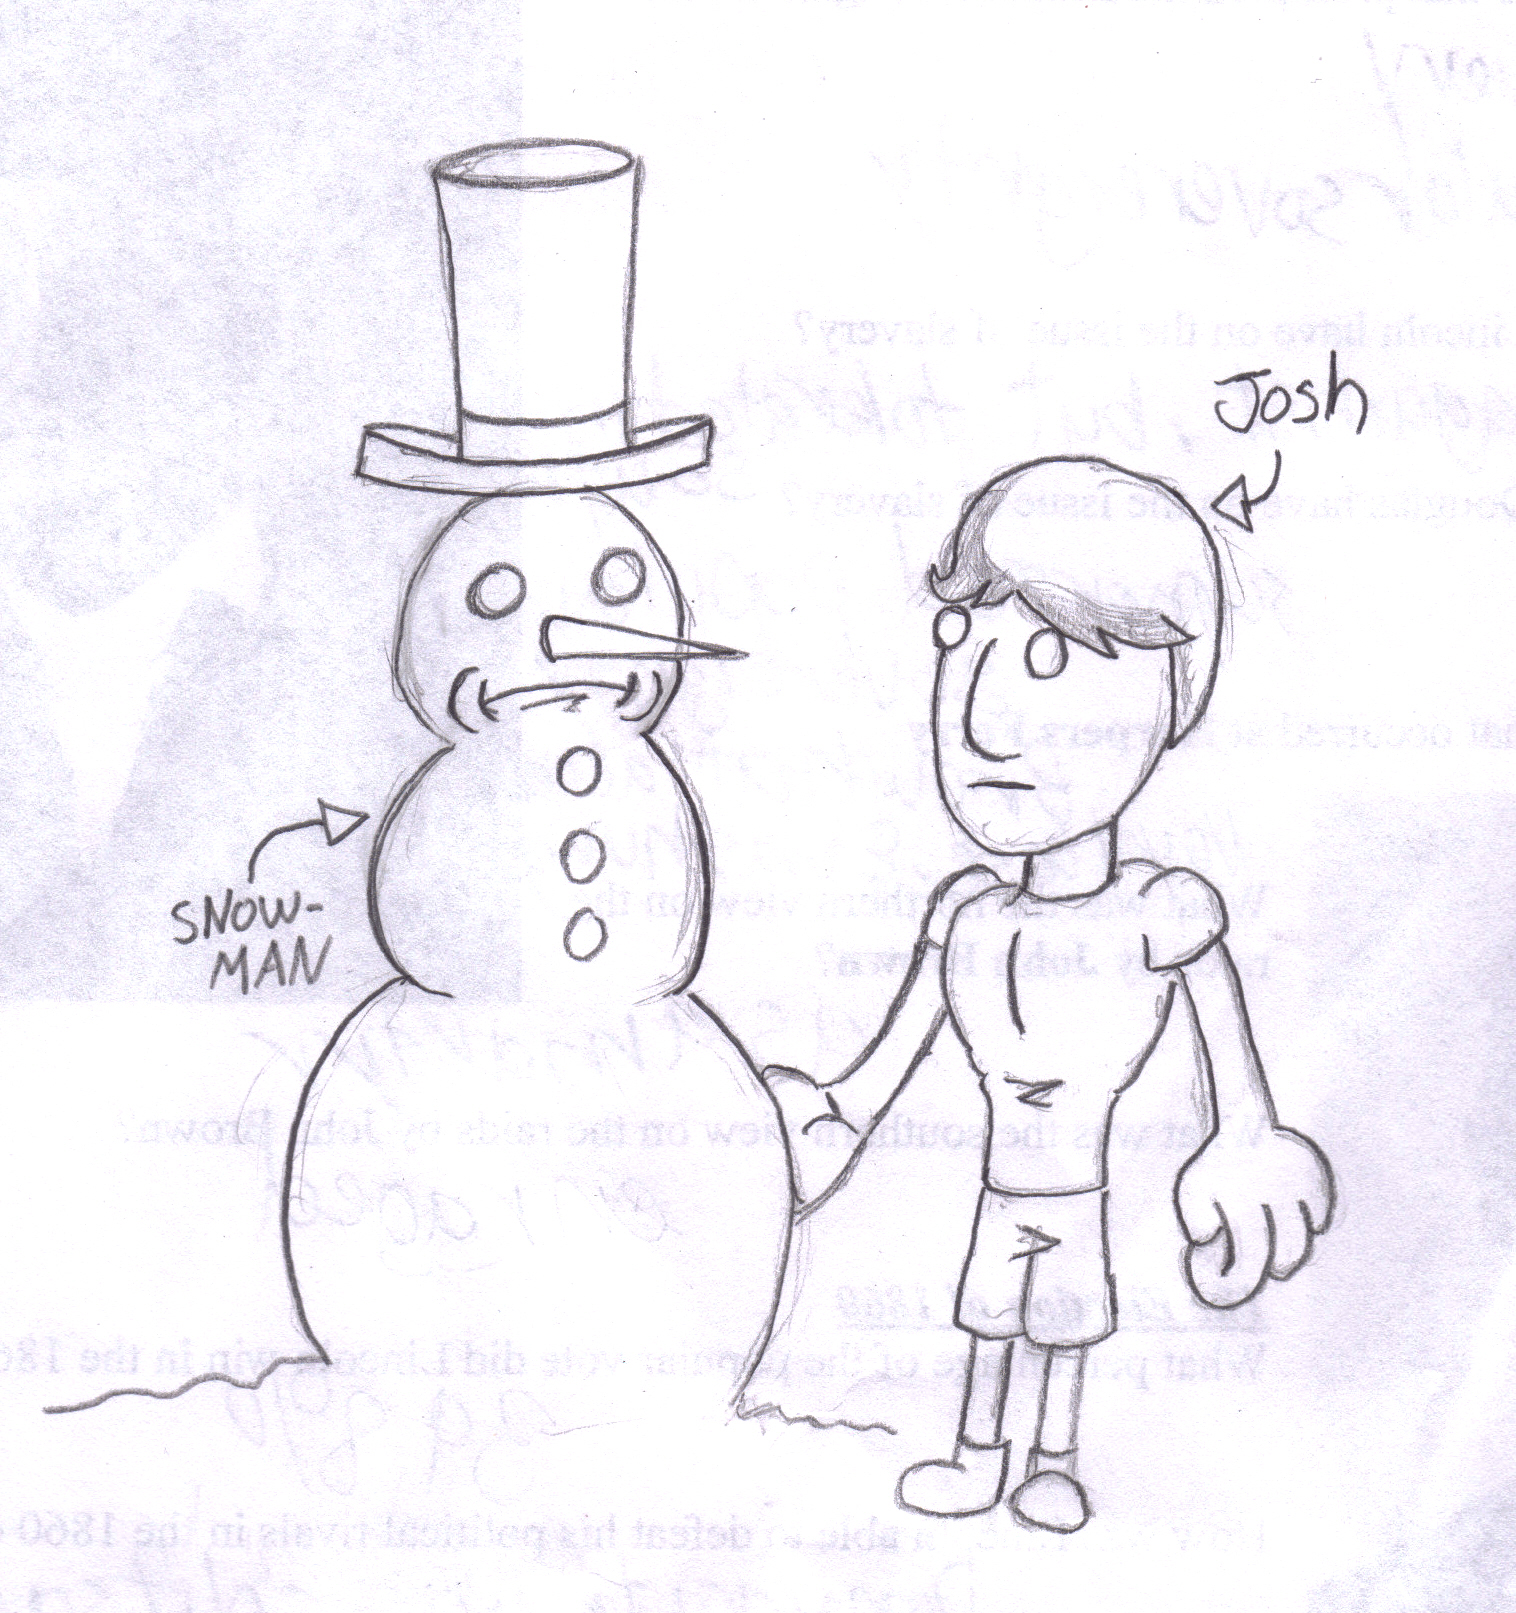 Josh and the Snowman